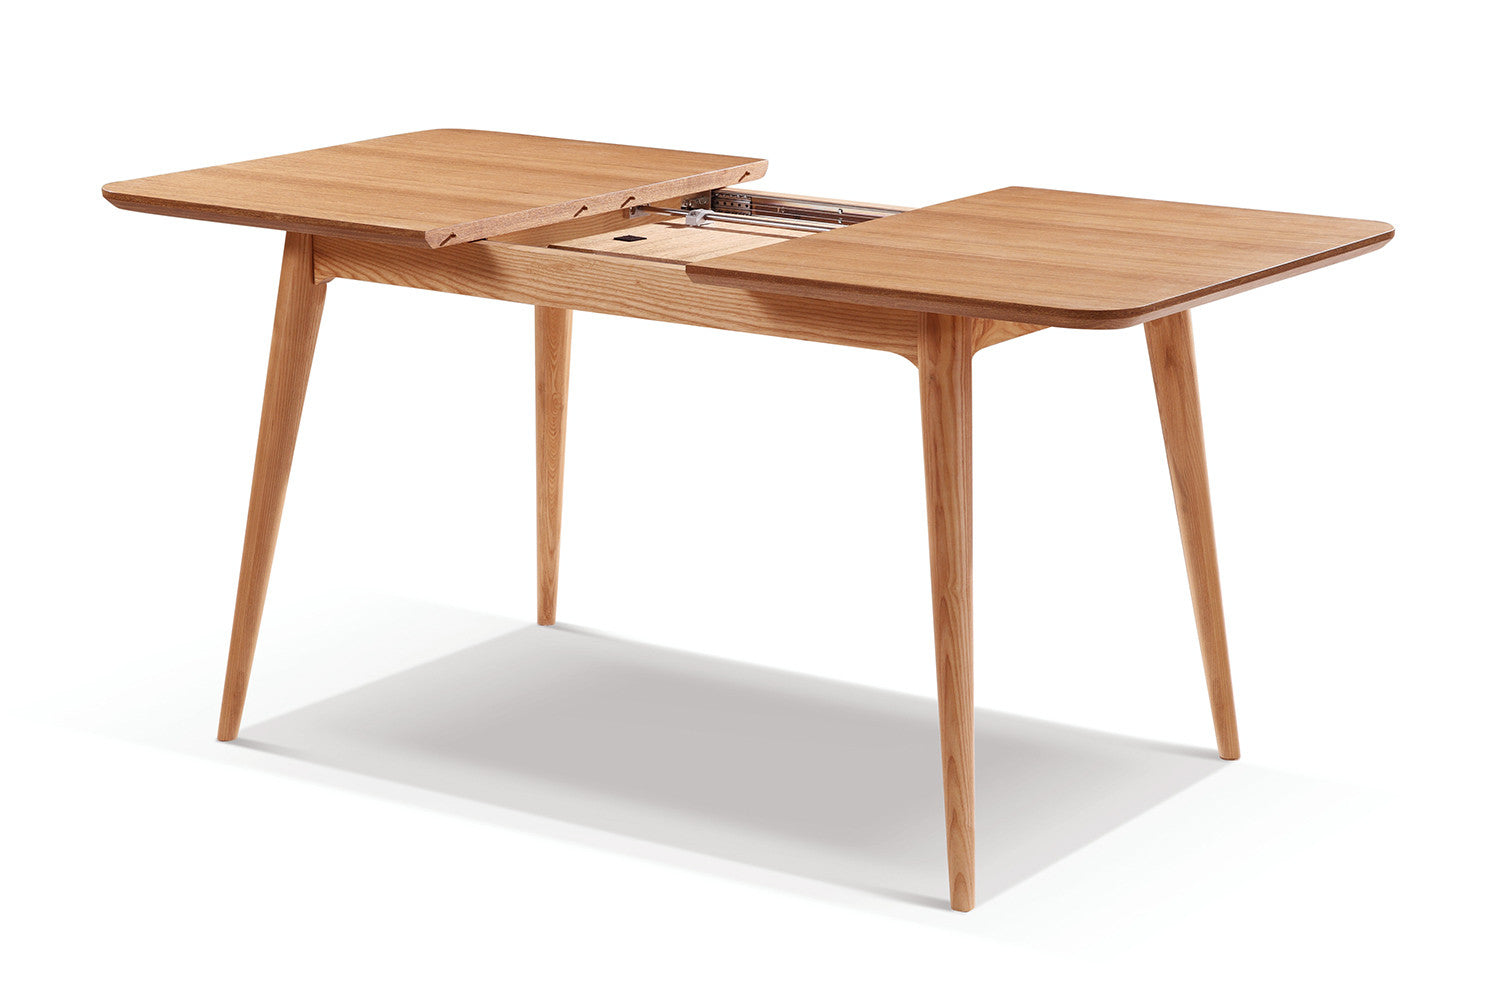 Table salle a manger extensible en bois maison design for Table salle a manger gain de place